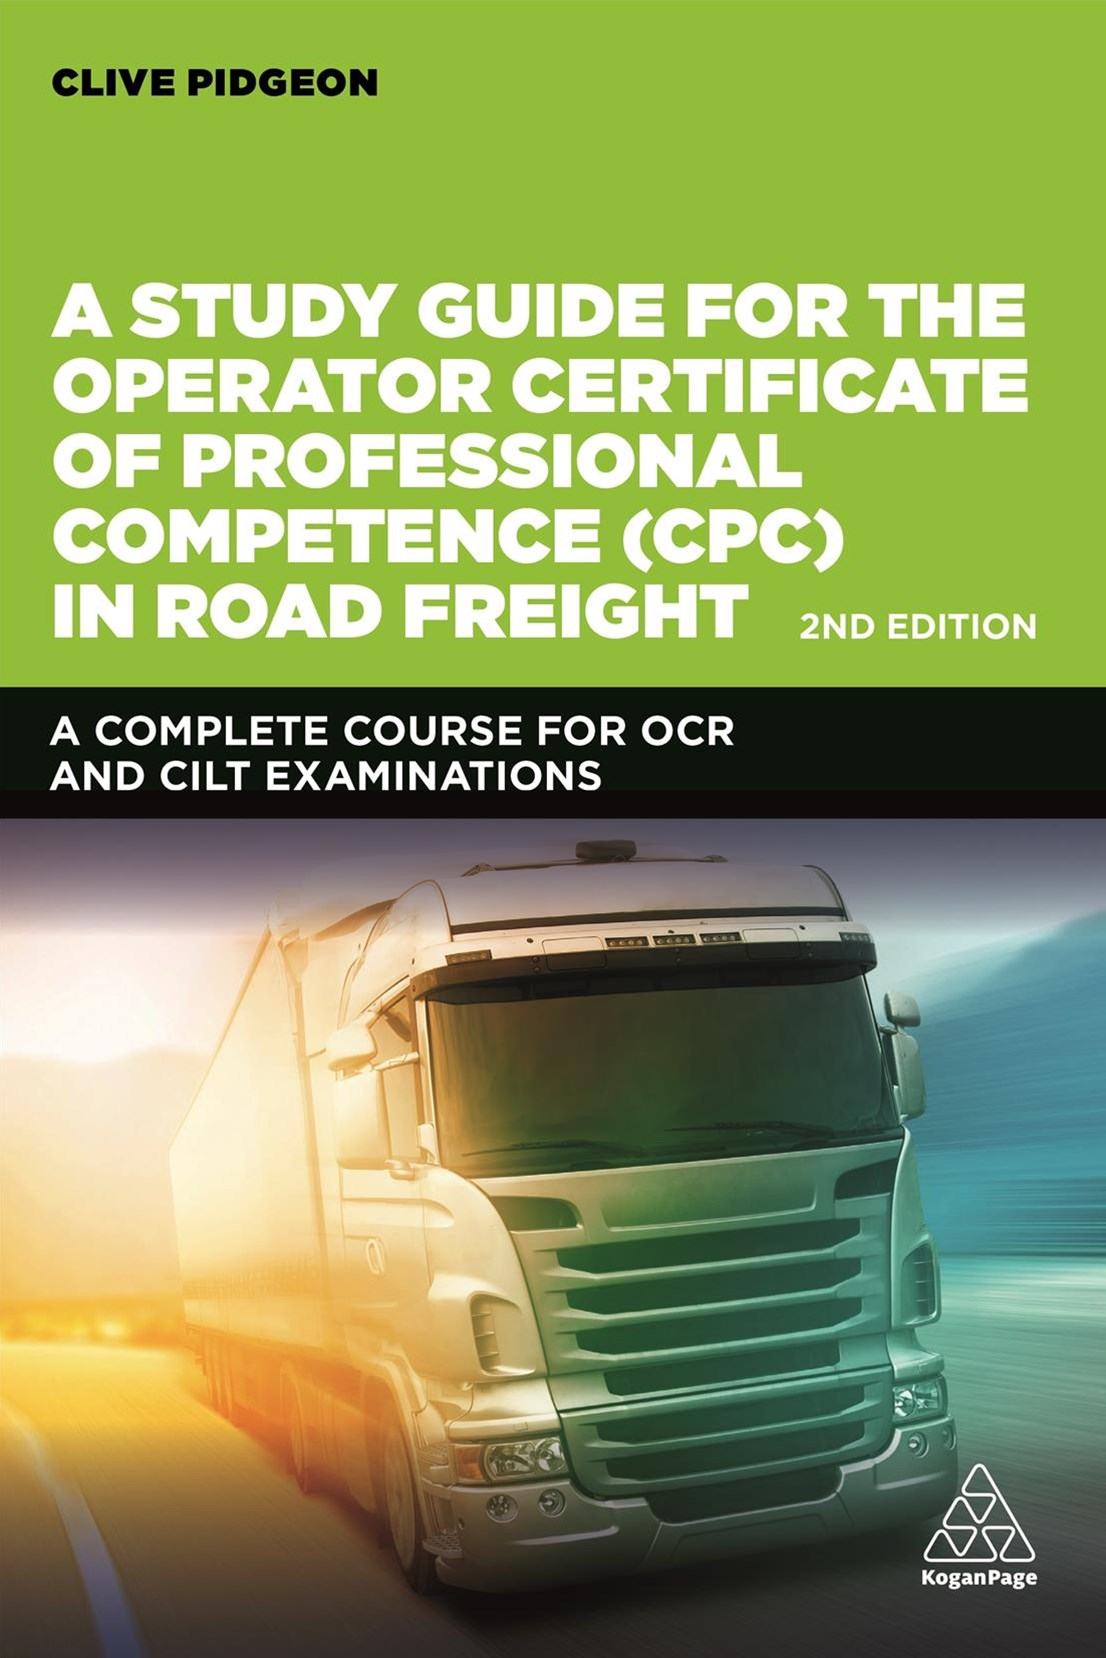 A Study Guide for the Operator Certificate of Professional Competence in Road Freight 2018